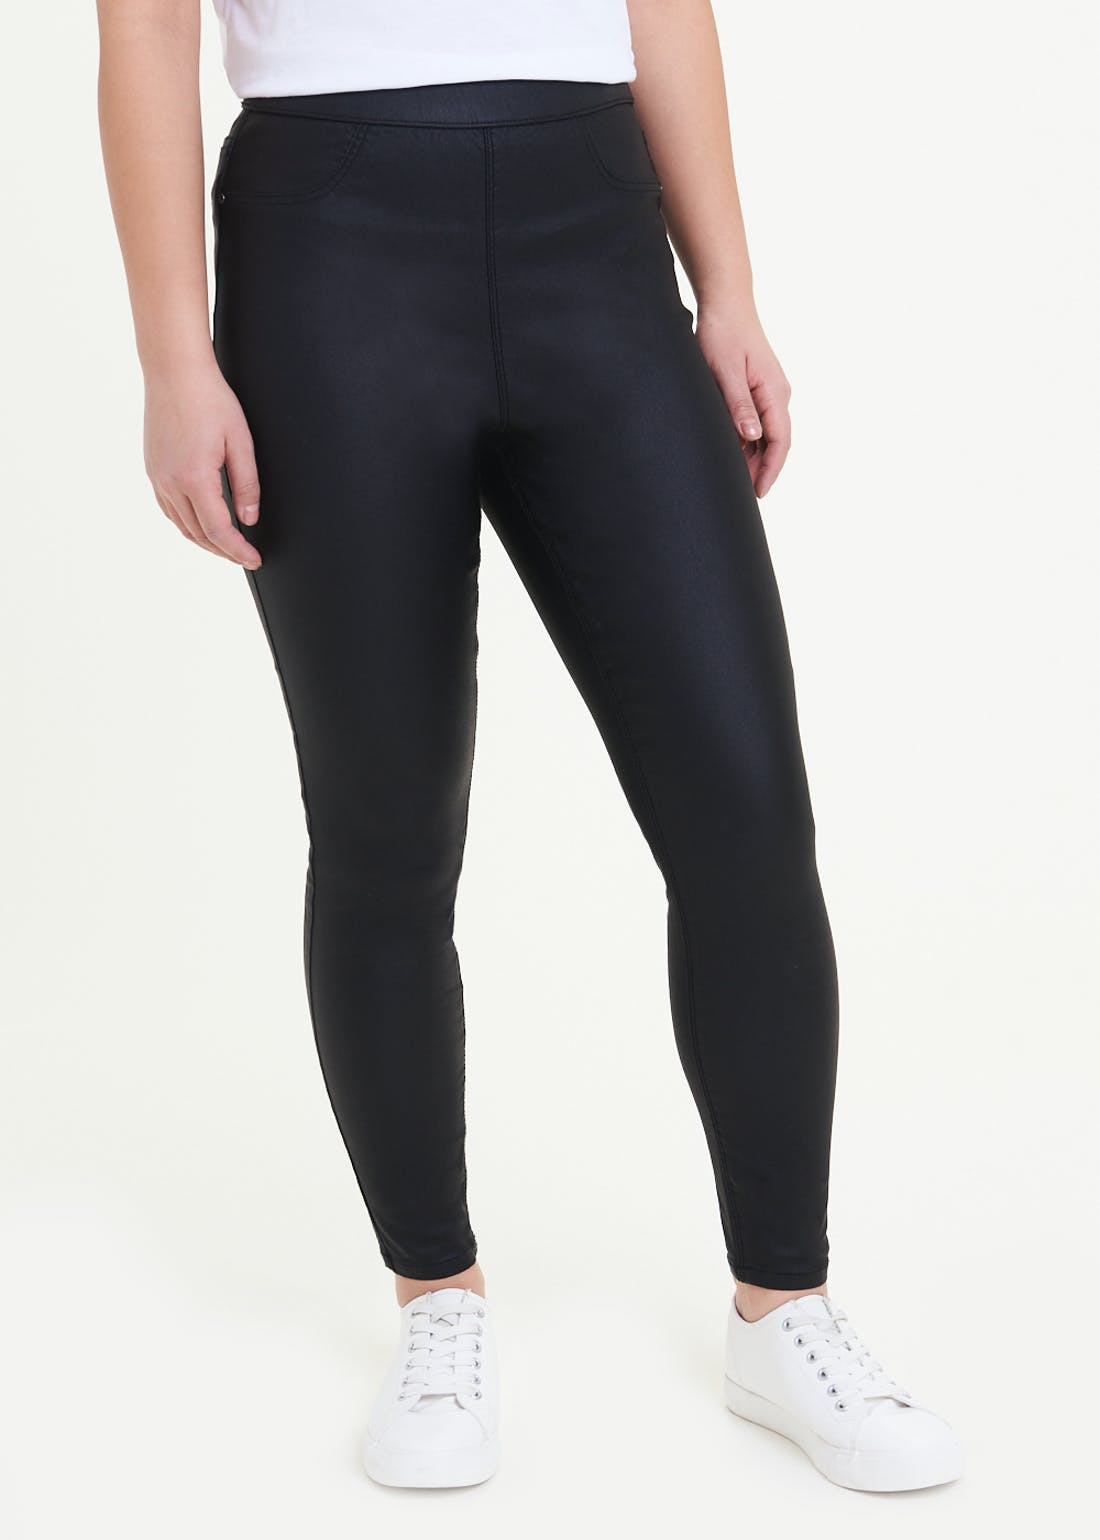 Papaya Petite Rosie Pull On Coated Jeggings